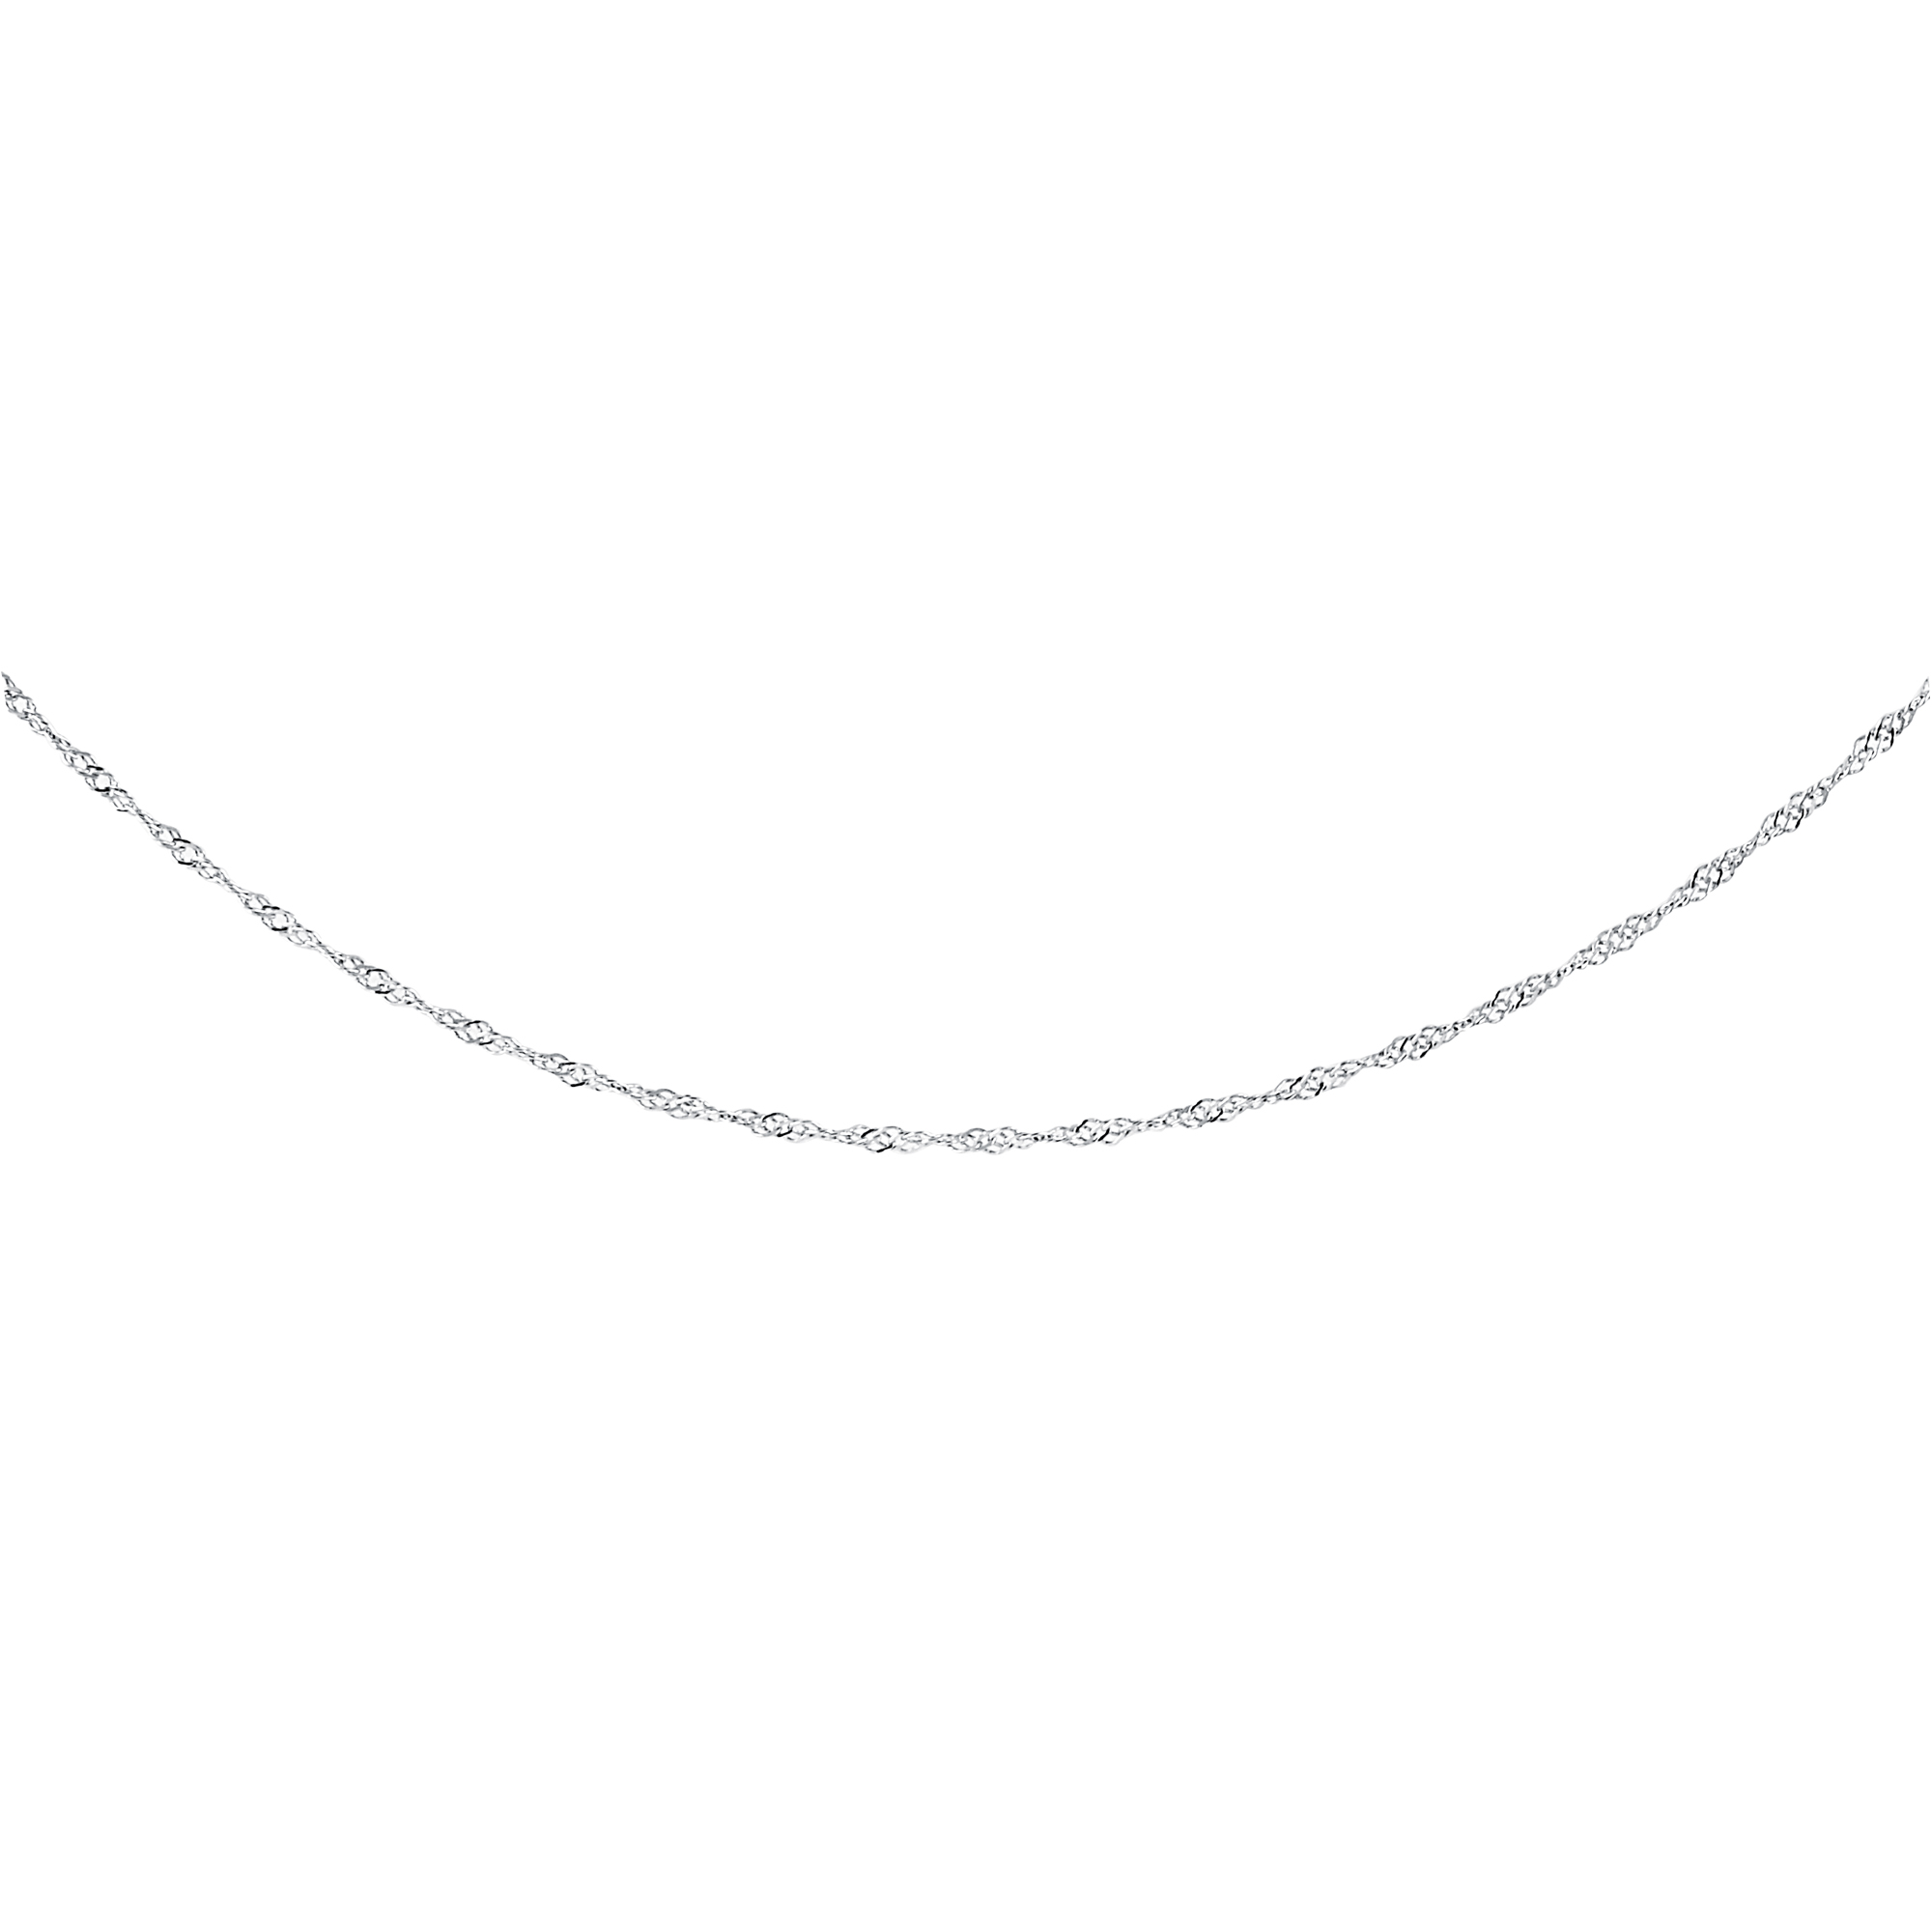 18'' Singapore Chain for ladies - 10K white Gold